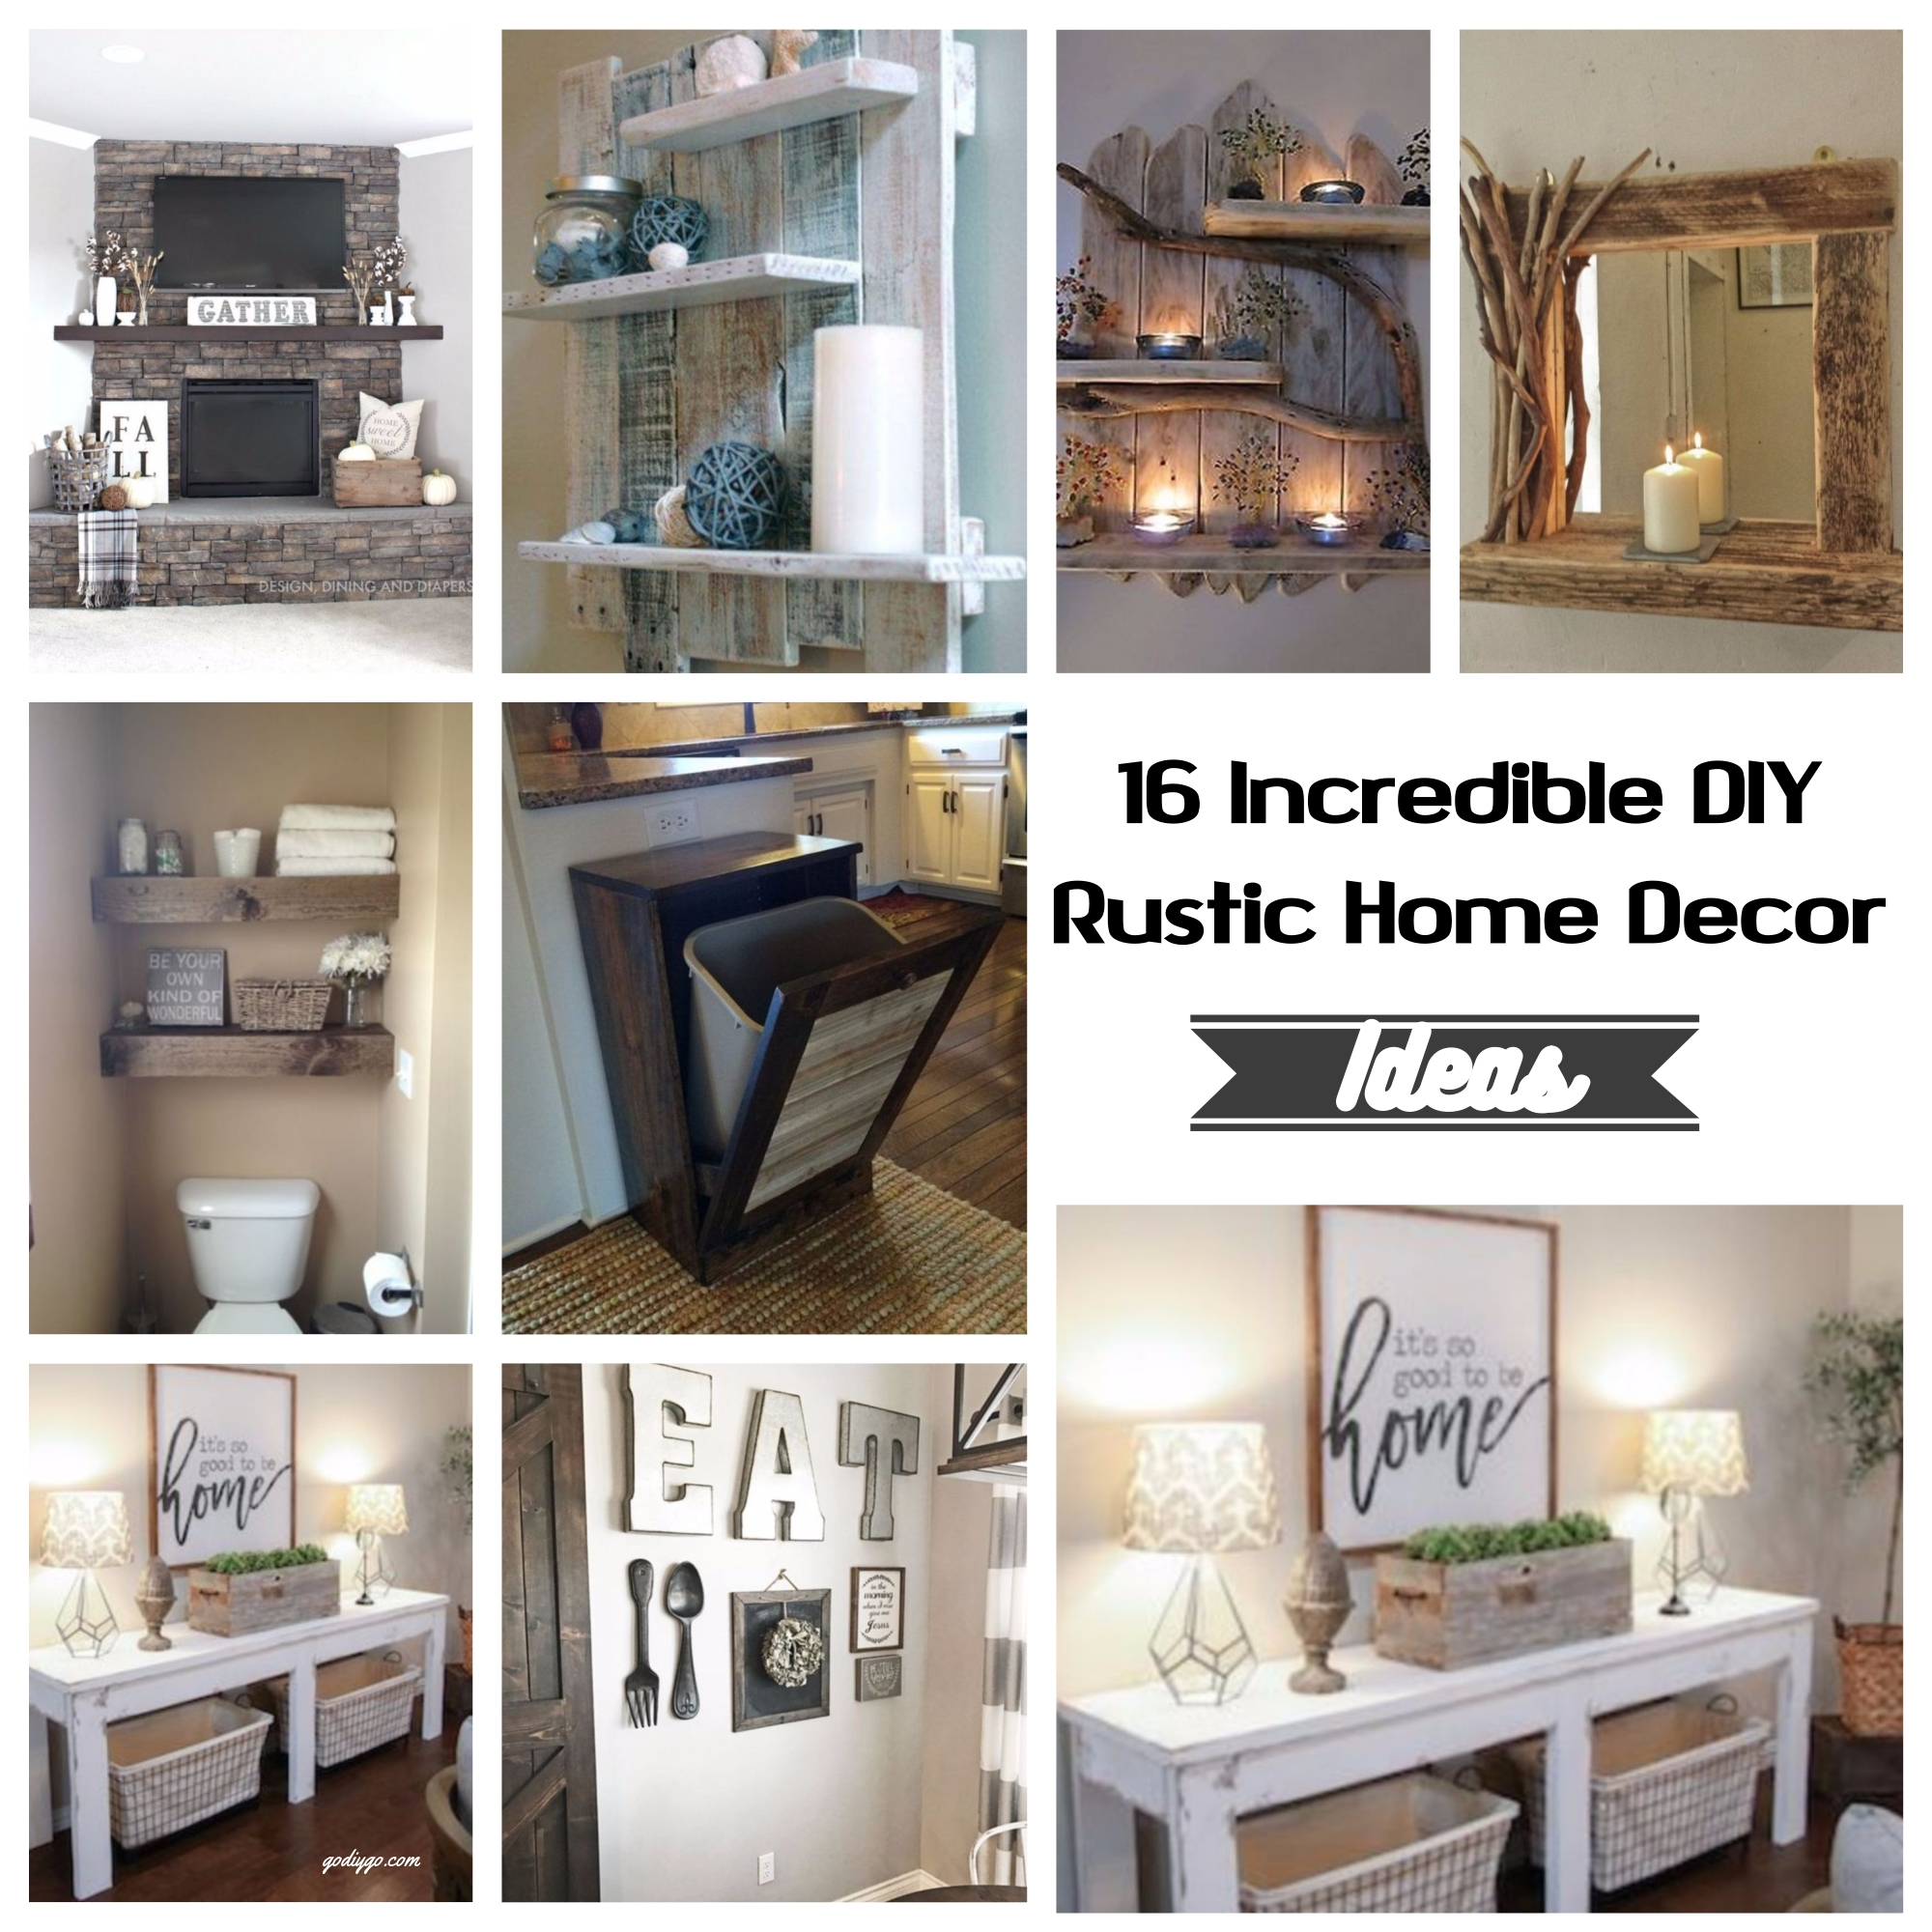 Home Interior Design Ideas Diy: 16 Incredible DIY Rustic Home Decor Ideas